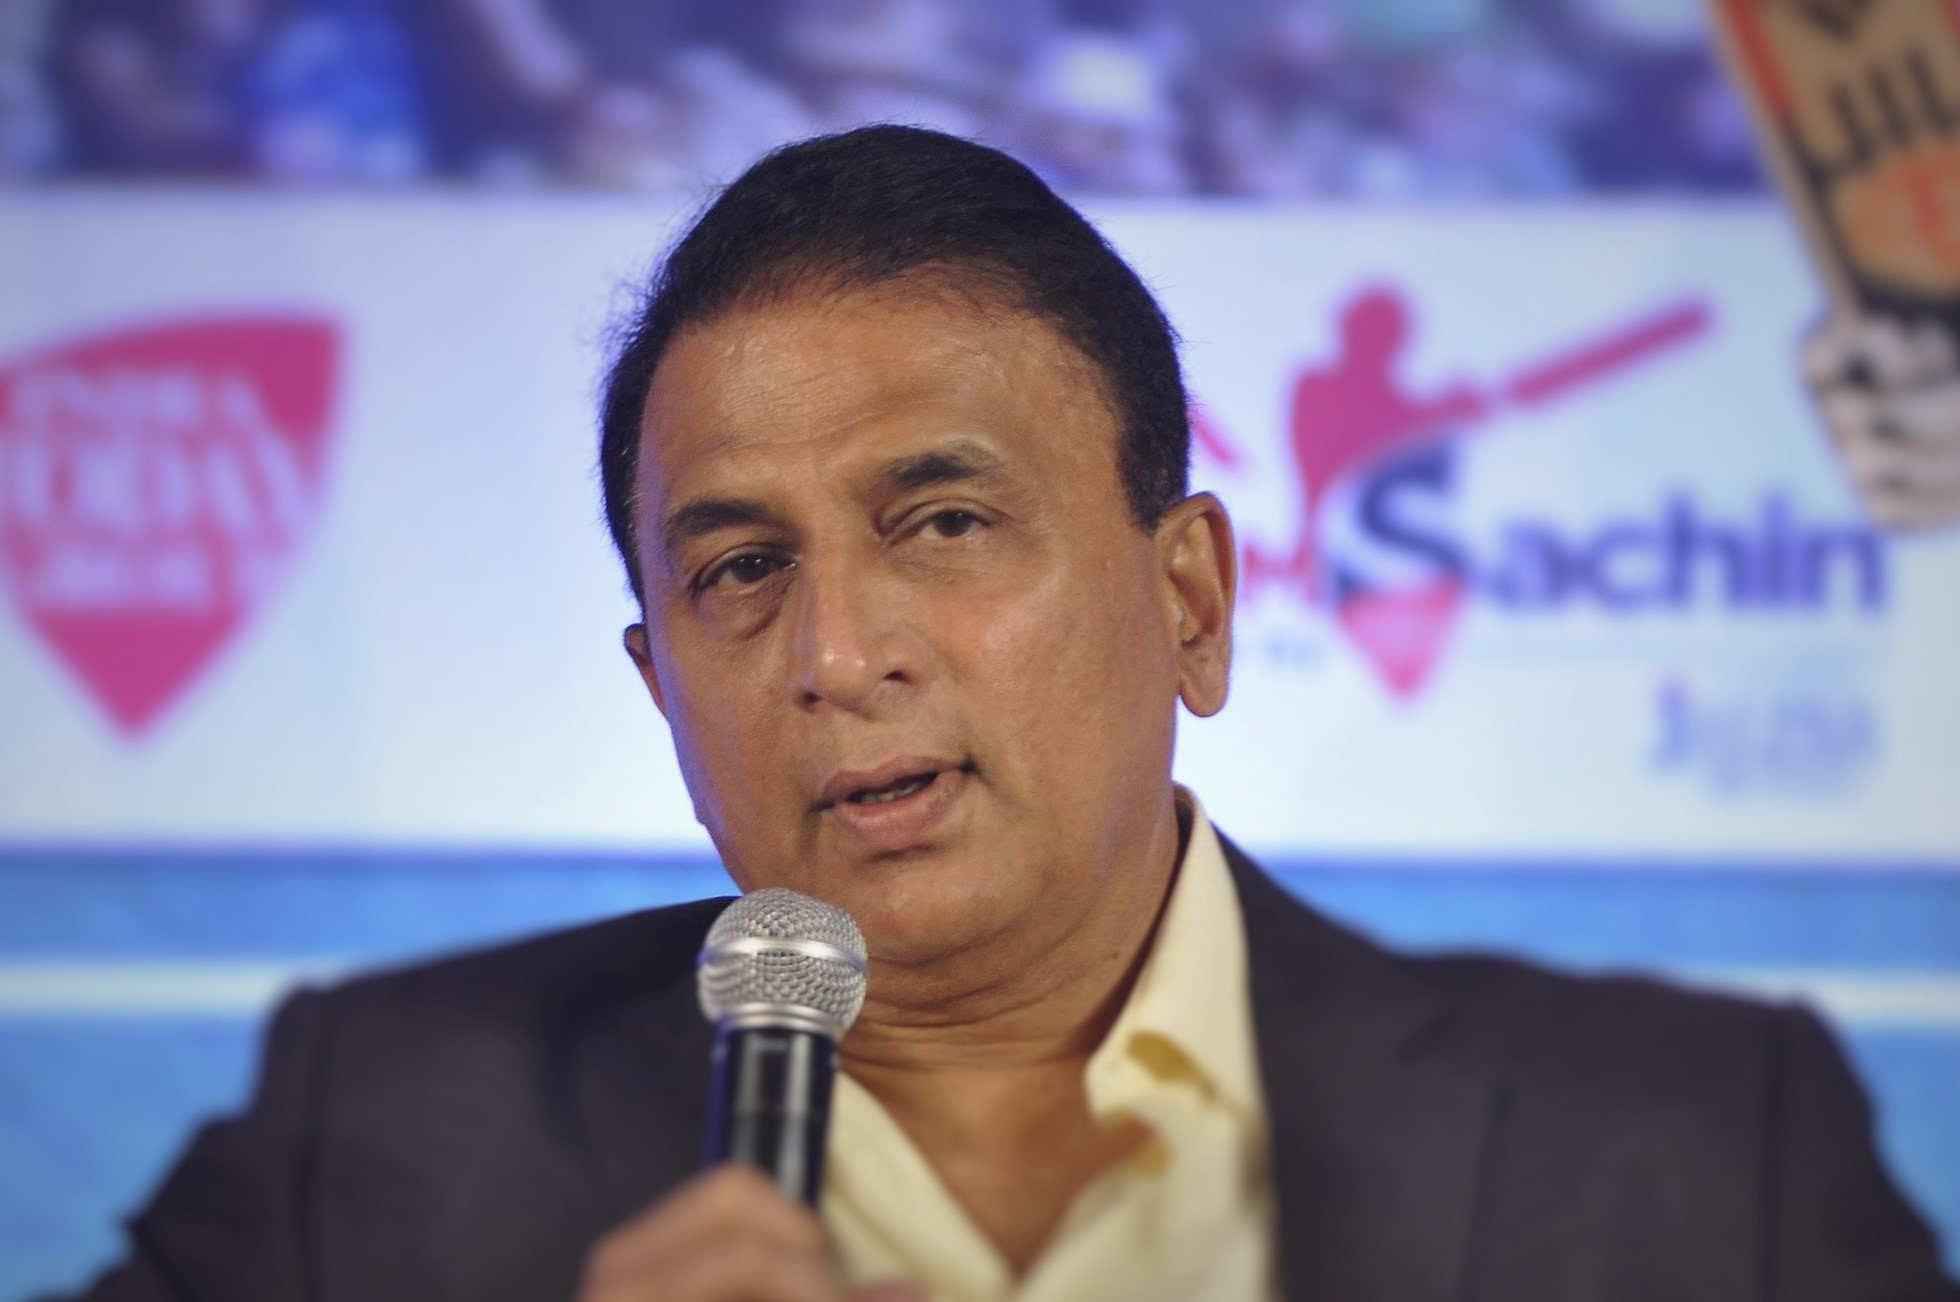 Former Indian cricketer Sunil Gavaskar during the Salute Sachin marathon broadcast by Aaj Tak Nehru Center in Mumbai on November 12, 2013. (Photo: IANS)